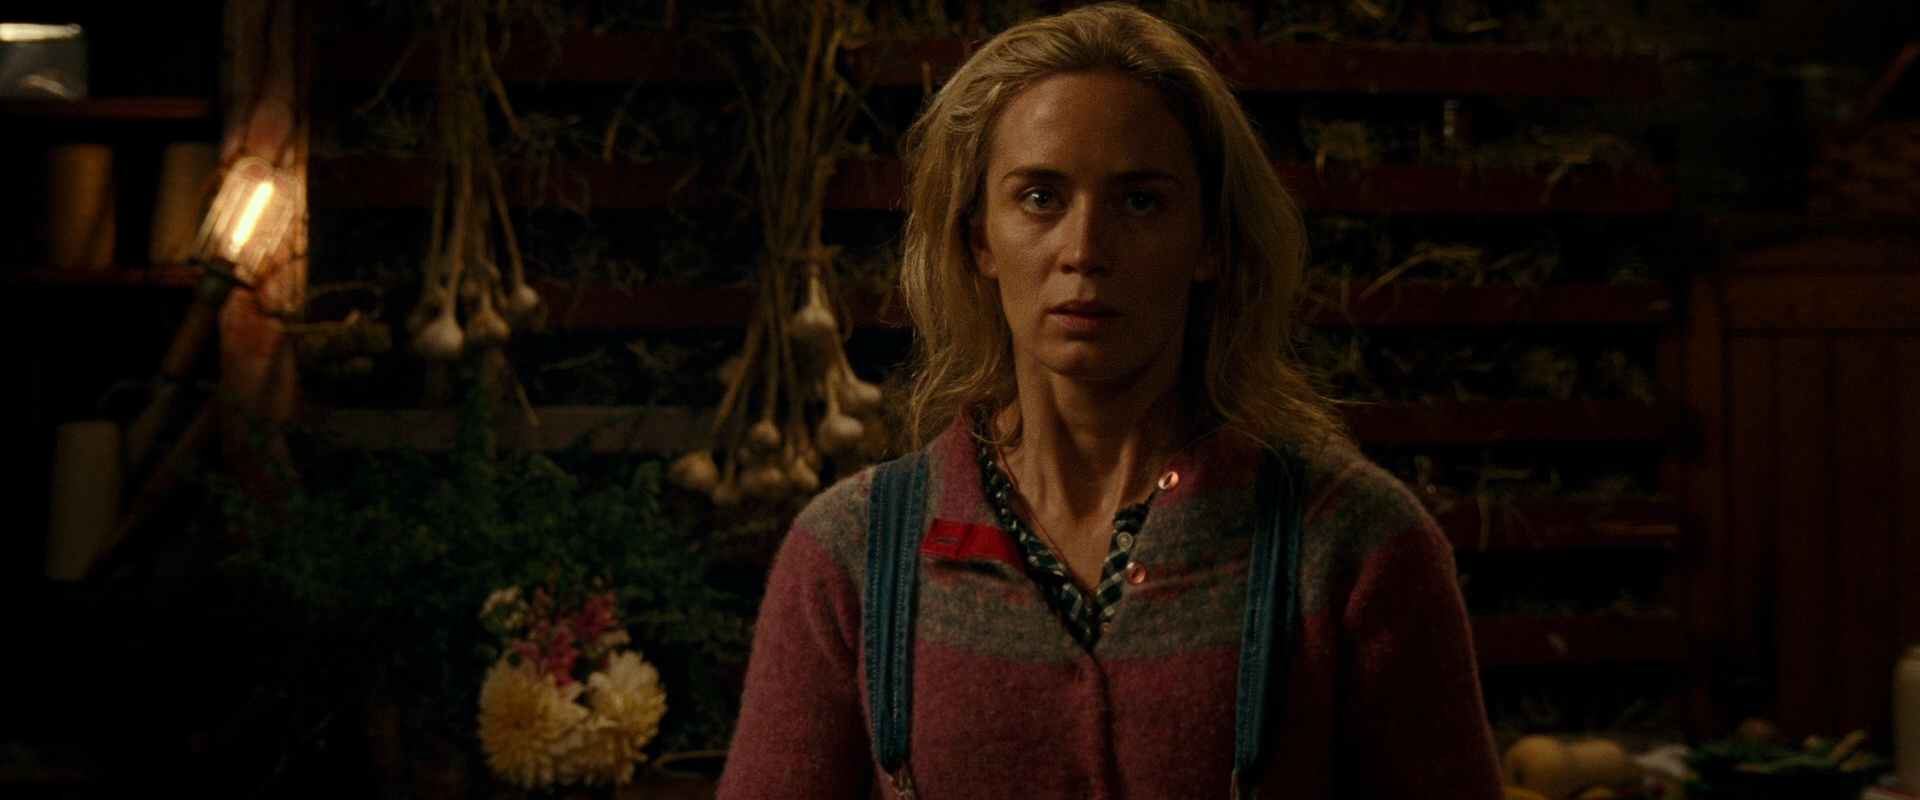 Тихое место / A Quiet Place (2018) BDRip 1080p | iTunes